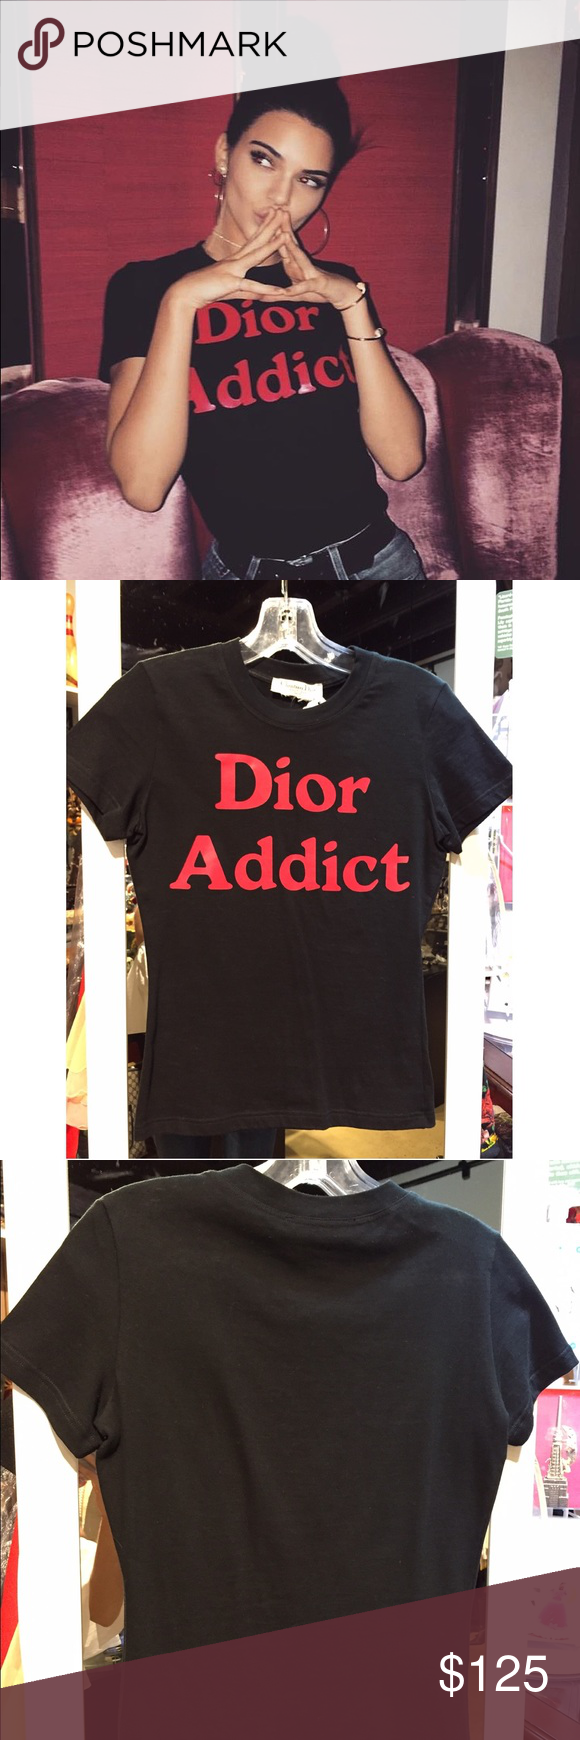 Dior Addict red print on black t-shirt As seen on Kendall